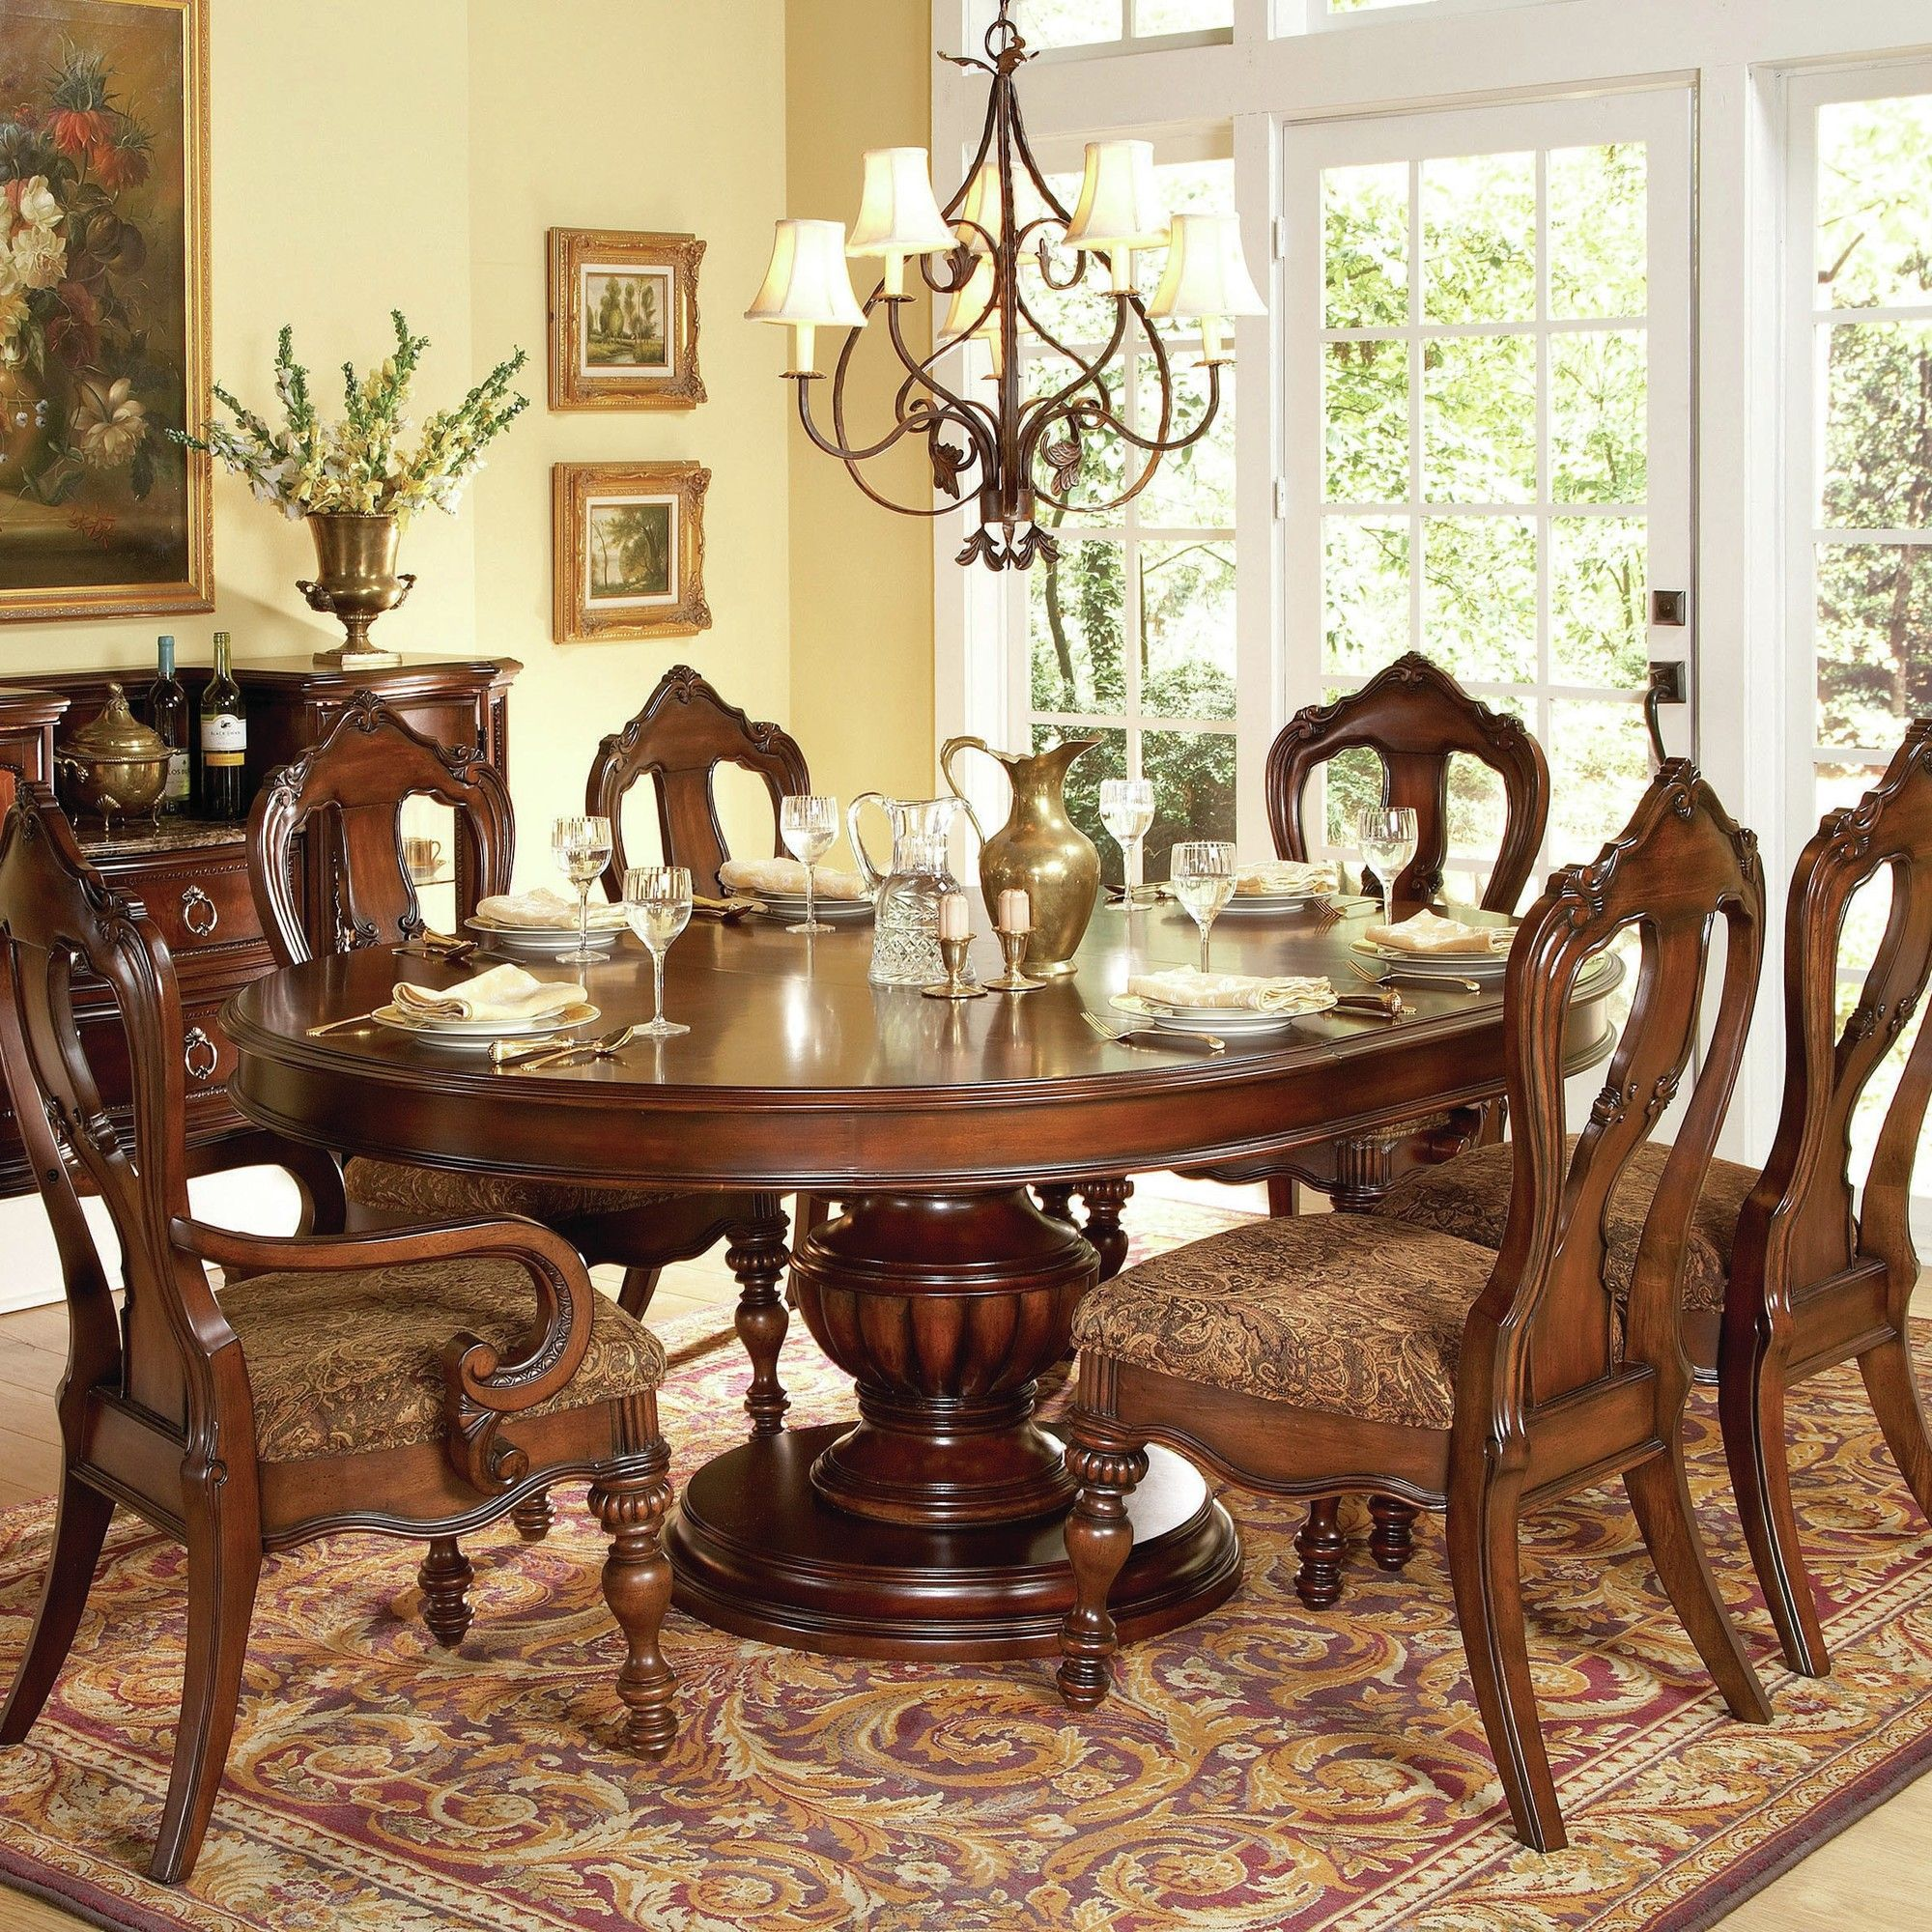 Home Elegance Prenzo Collection Round / Oval Pedestal Dining Table